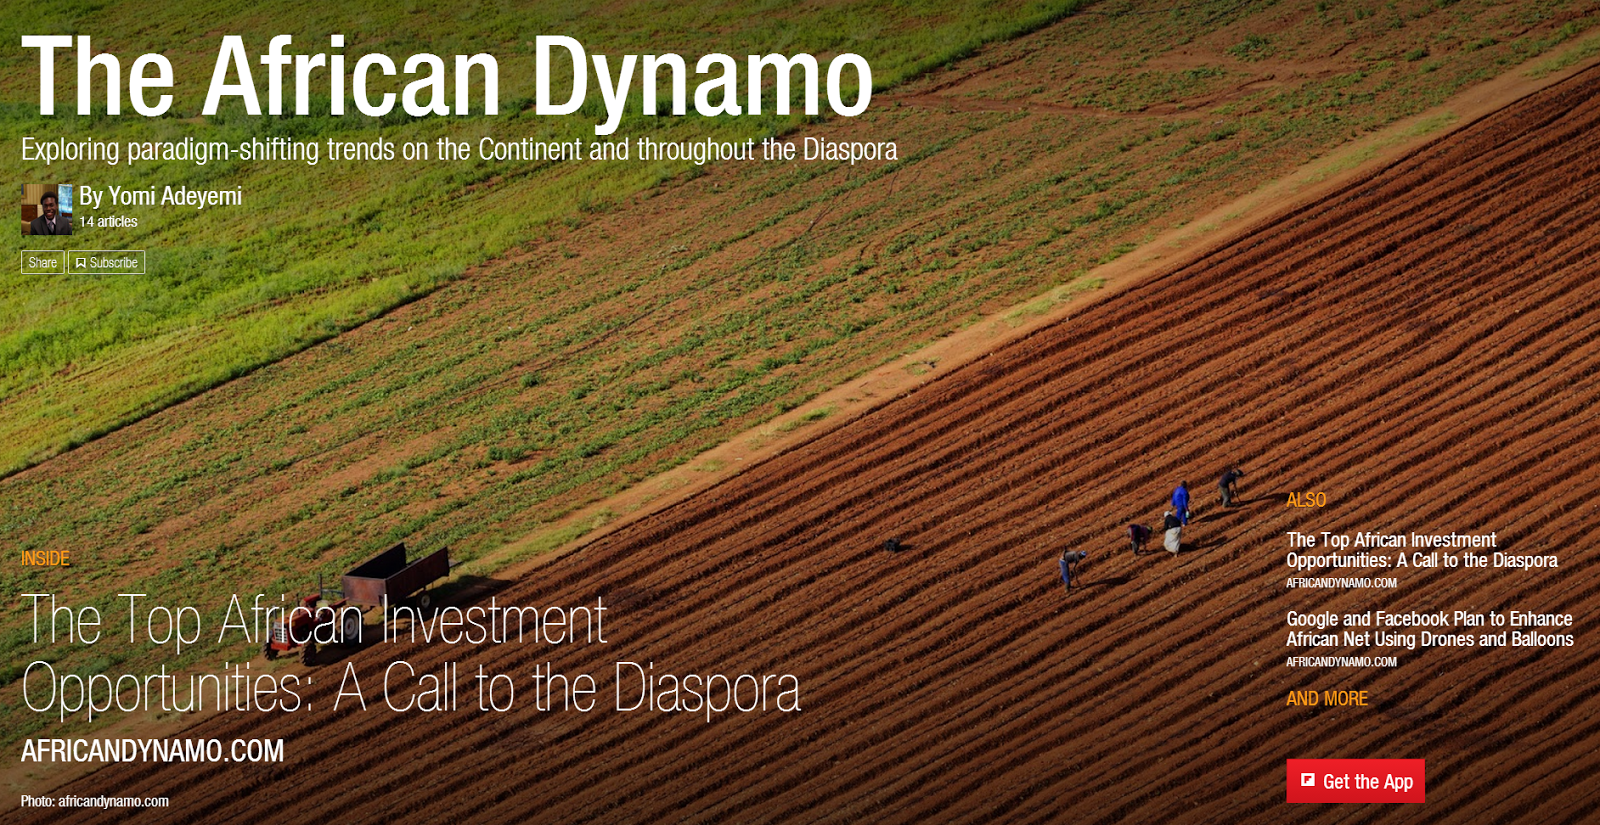 African Dynamo Magazine. Now on Flipboard https://t.co/kNJHrwcDnn